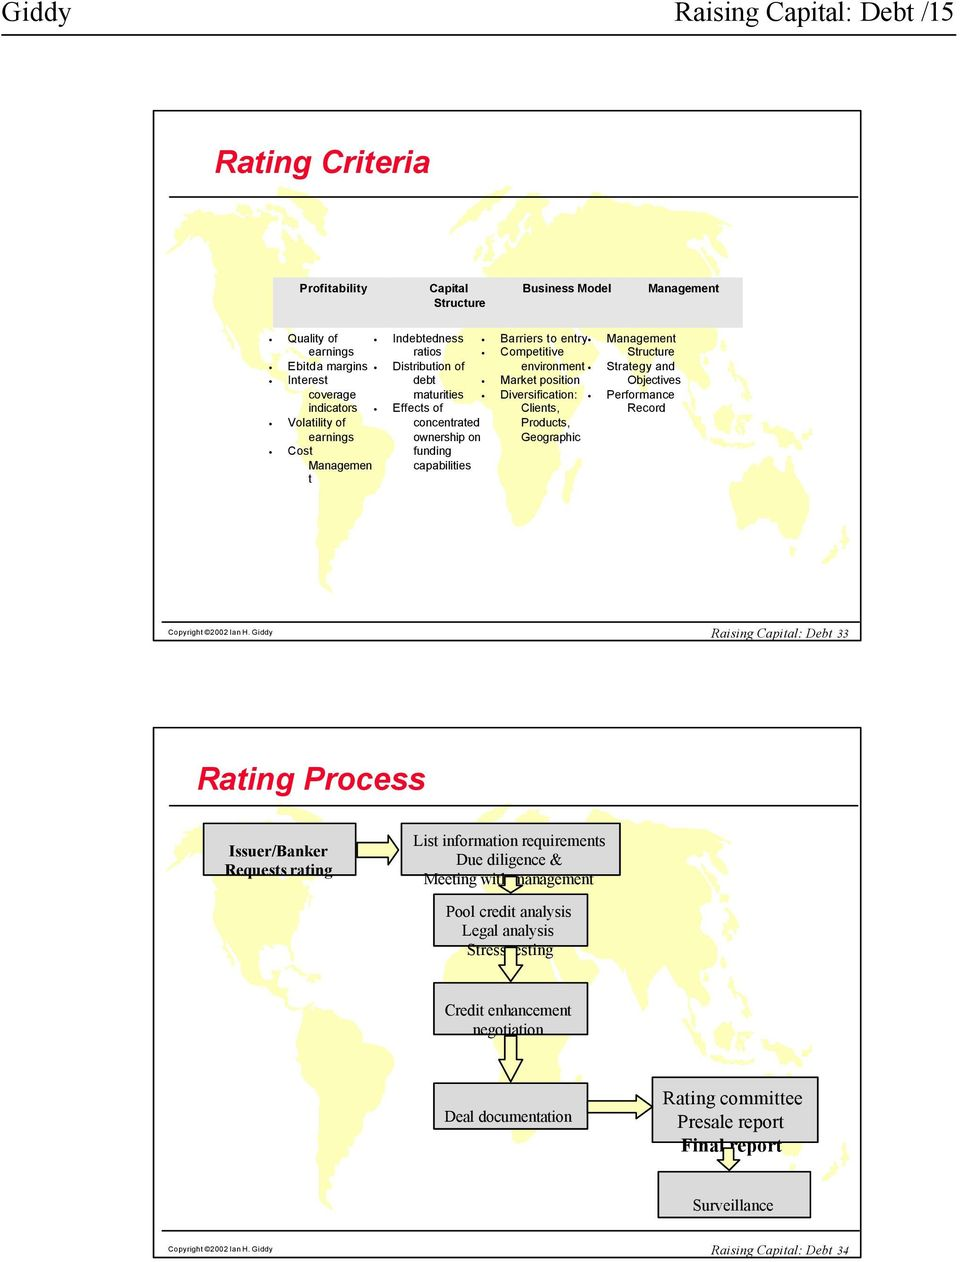 Diversification: Clients, Products, Geographic Structure Strategy and Objectives Performance Record Copyright 2002 Ian H.